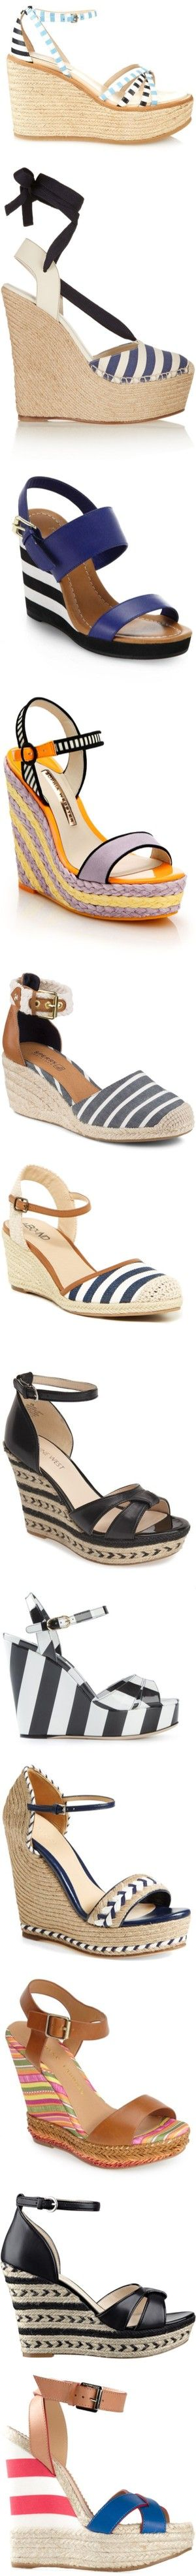 Summer Stripes: Cute Wedges by polyvore-editorial on Polyvore featuring stripedwedges, shoes, sandals, blue stripe, heels, strappy heel sandals, blue strappy sandals, strappy sandals, blue sandals and leather sandals